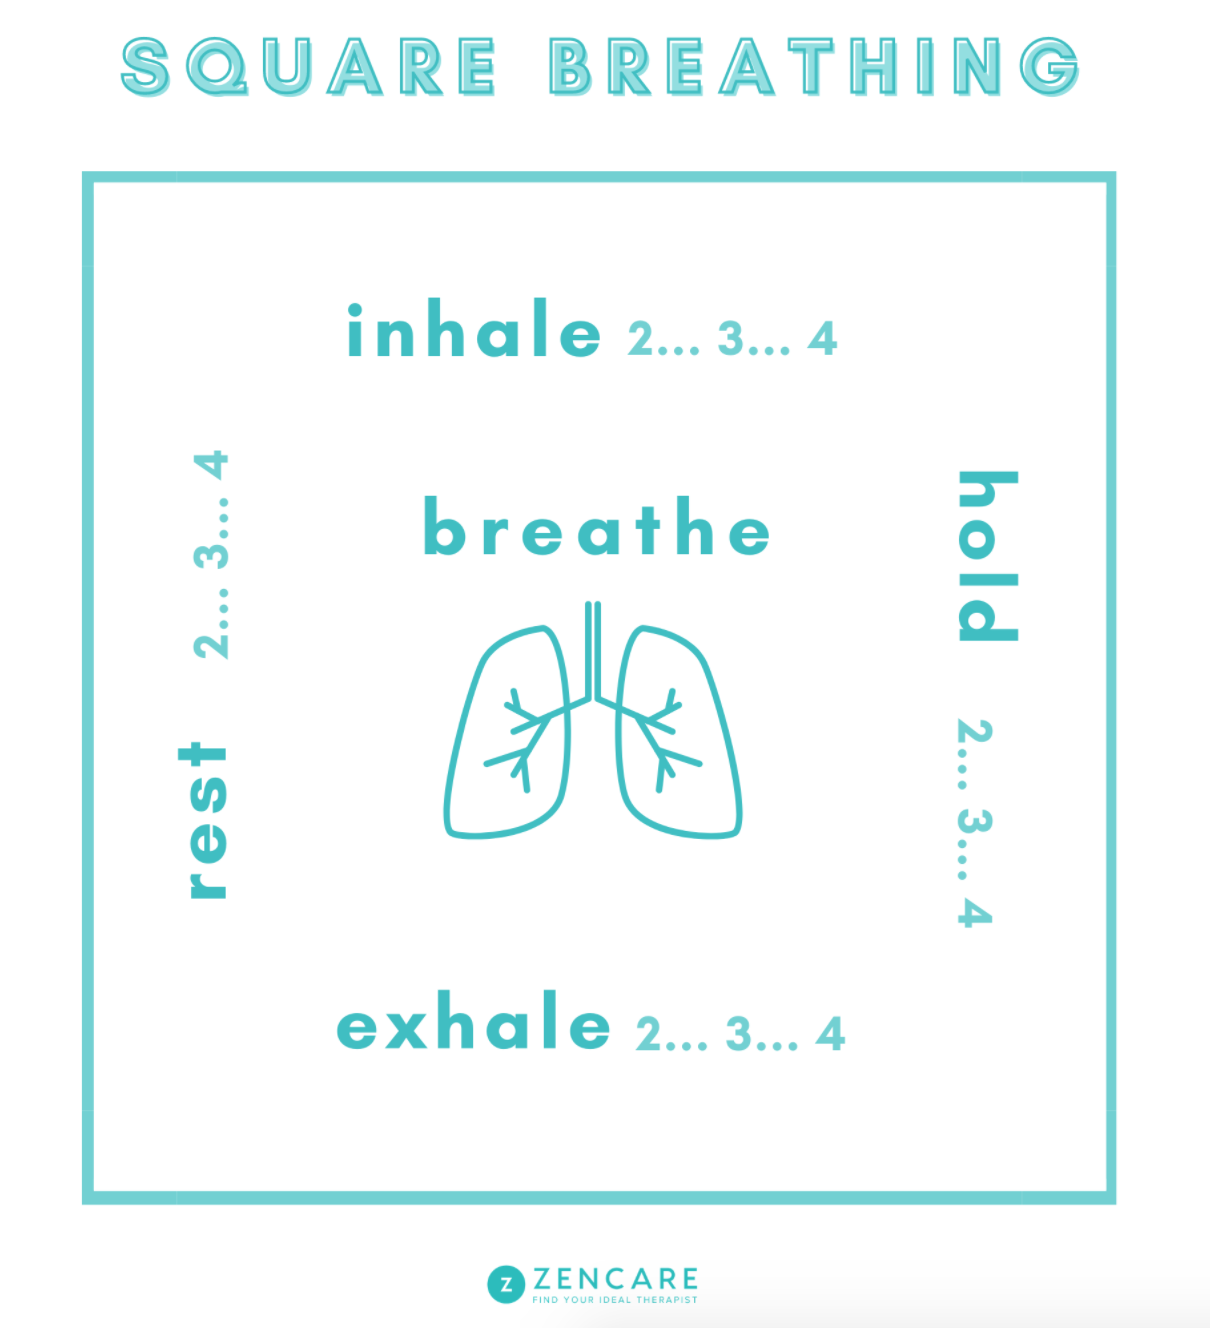 A graphic design showing a pair of lungs in a square, with inhale, hold, exhale, and rest written on each side of the box